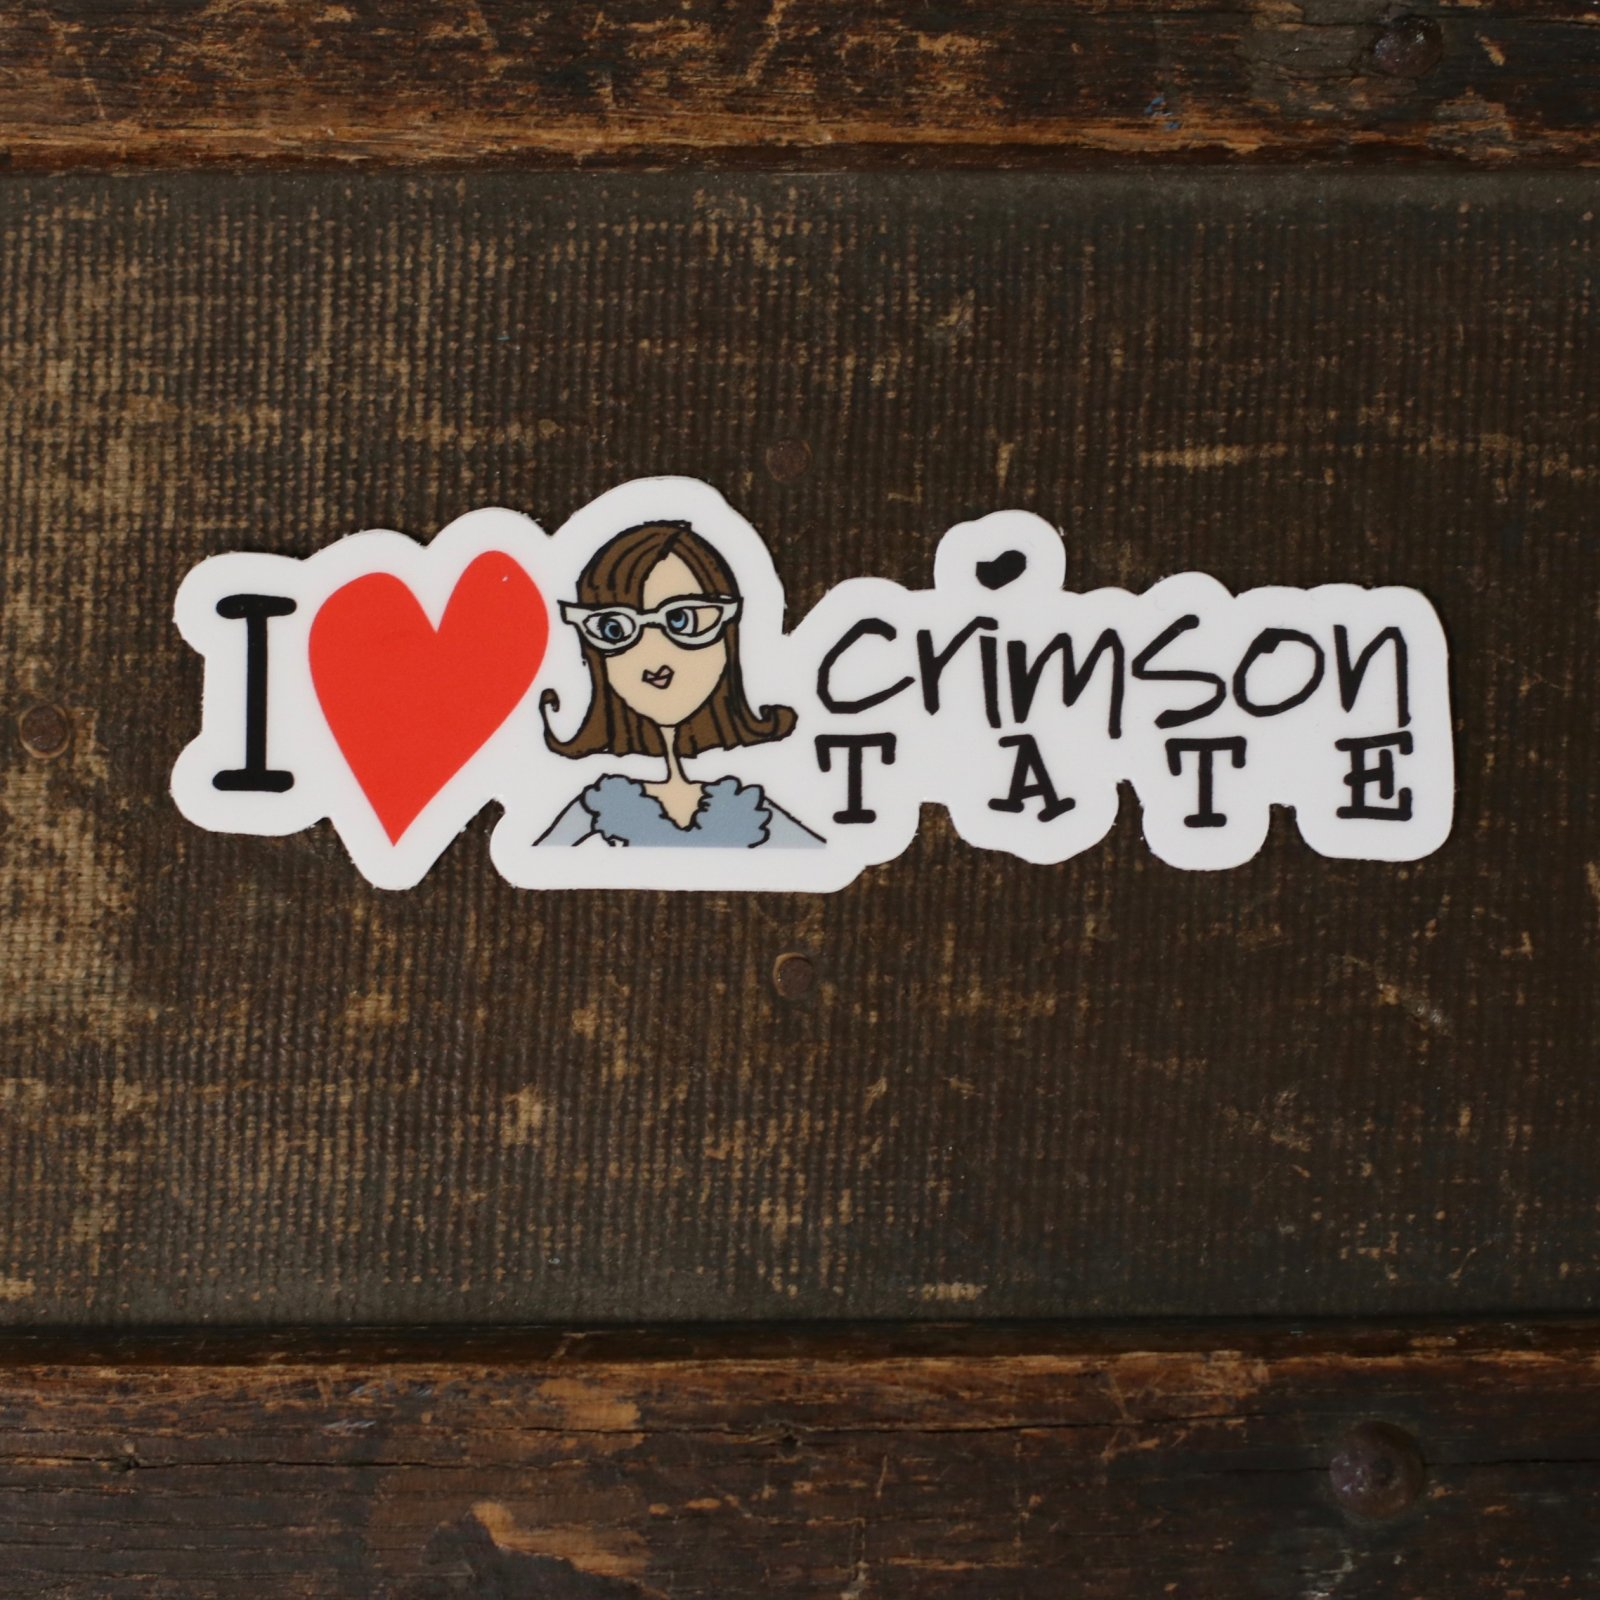 I Heart Crimson Tate Sticker